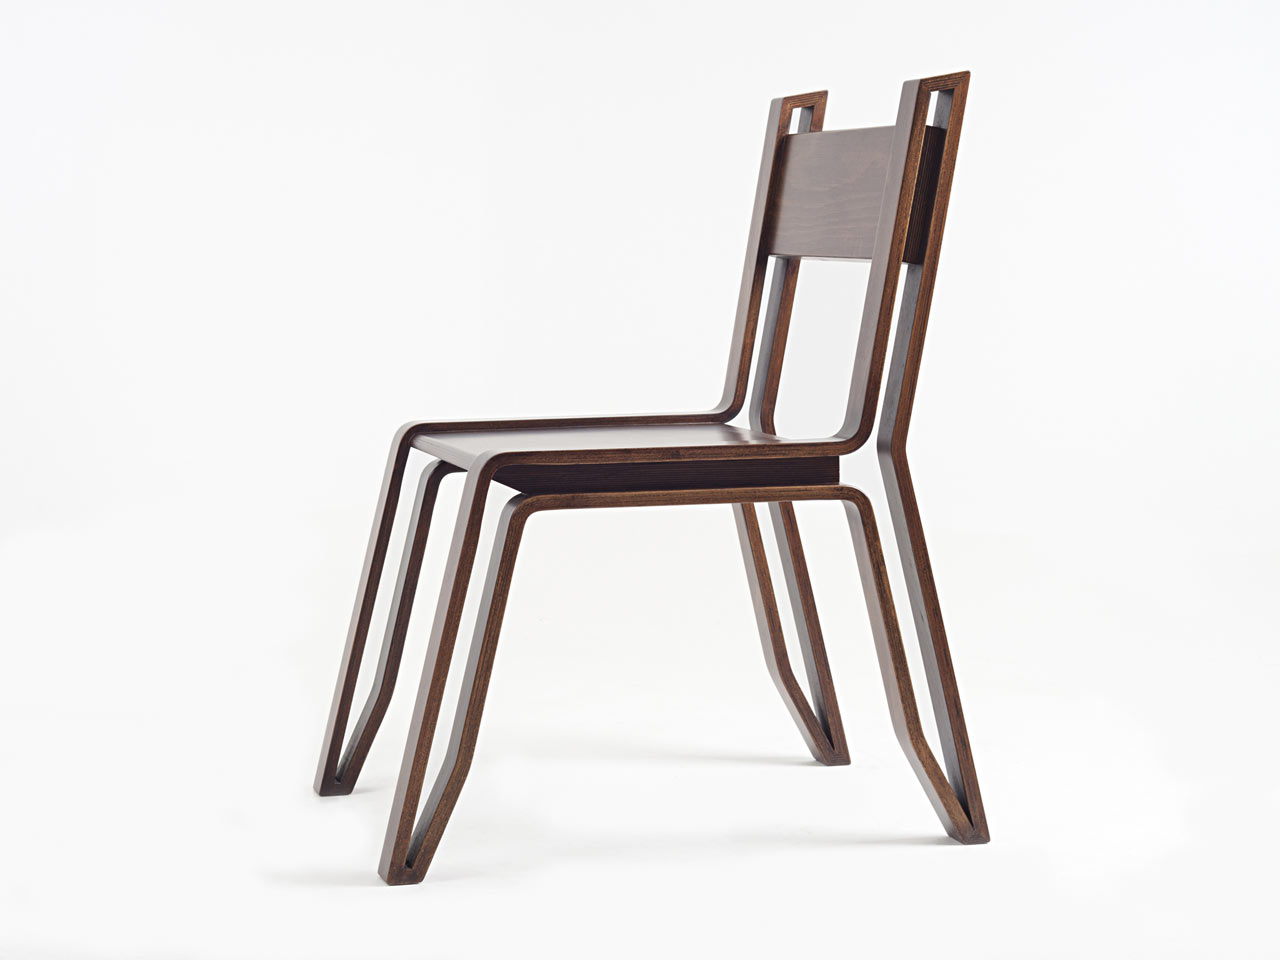 Inout Chair by Bucca Design